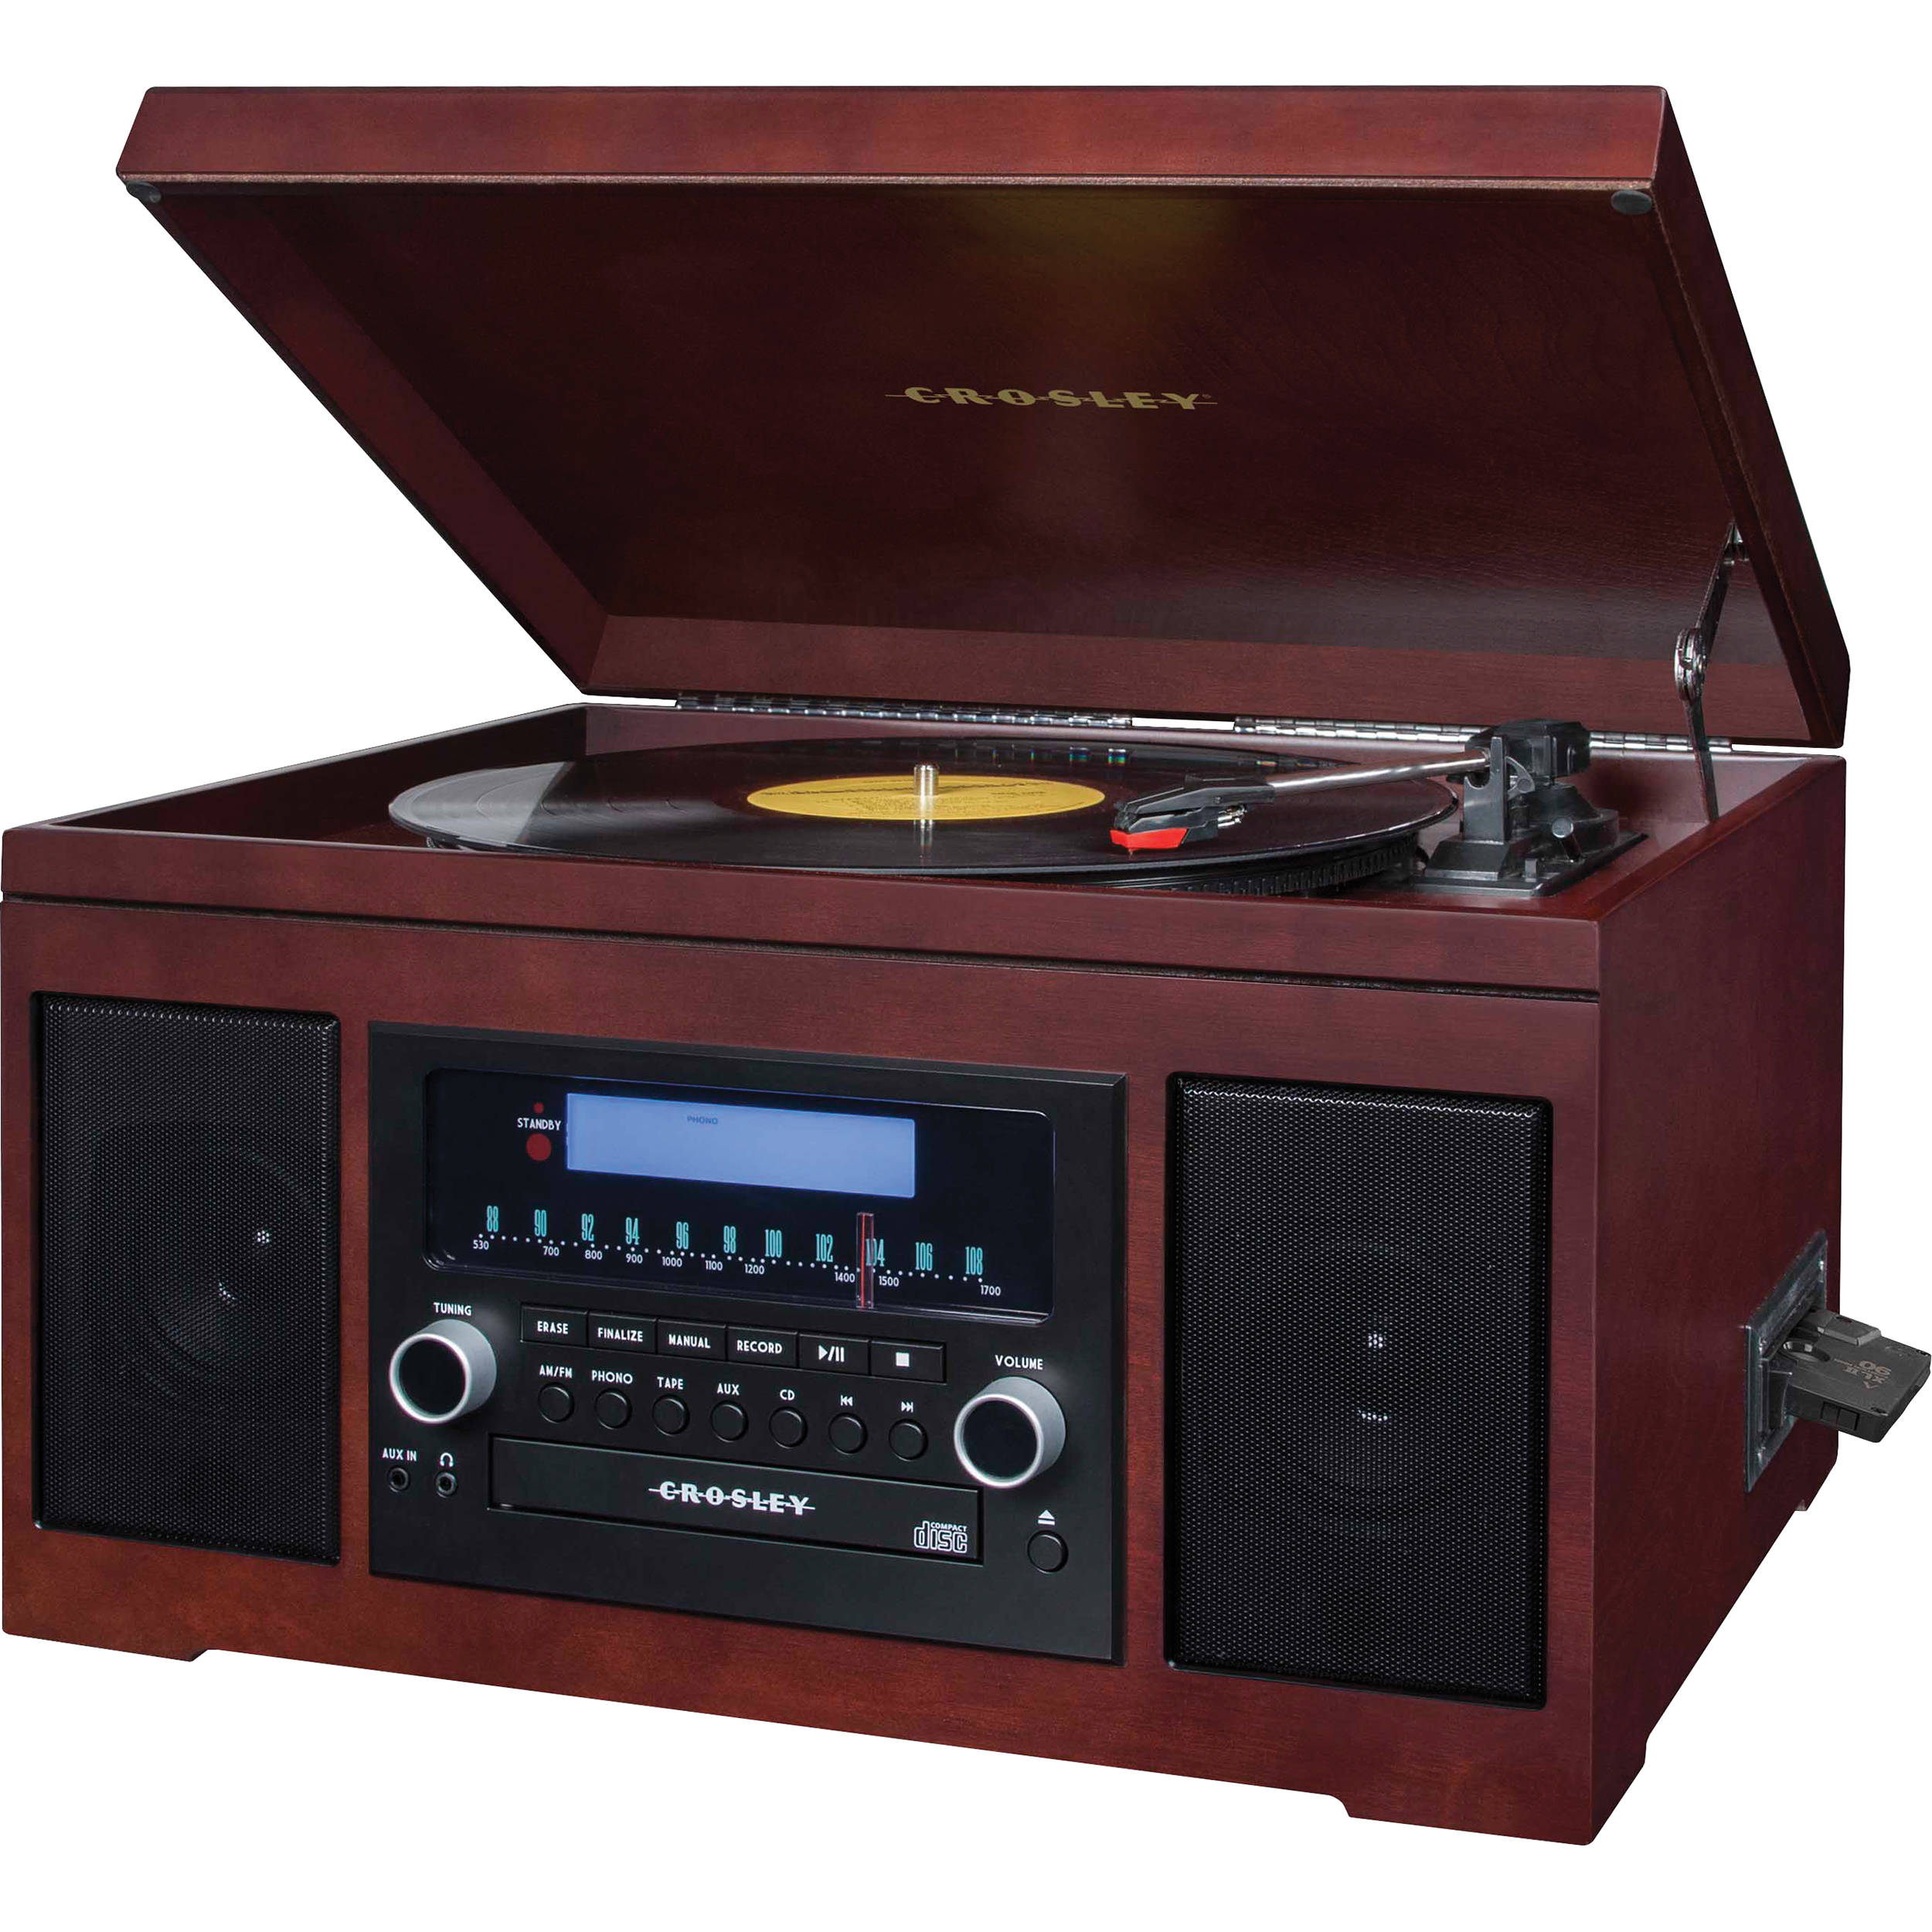 Amazing Crosley Radio Cannon Sound System With Turntable, CD Player/Recorder, AM/FM